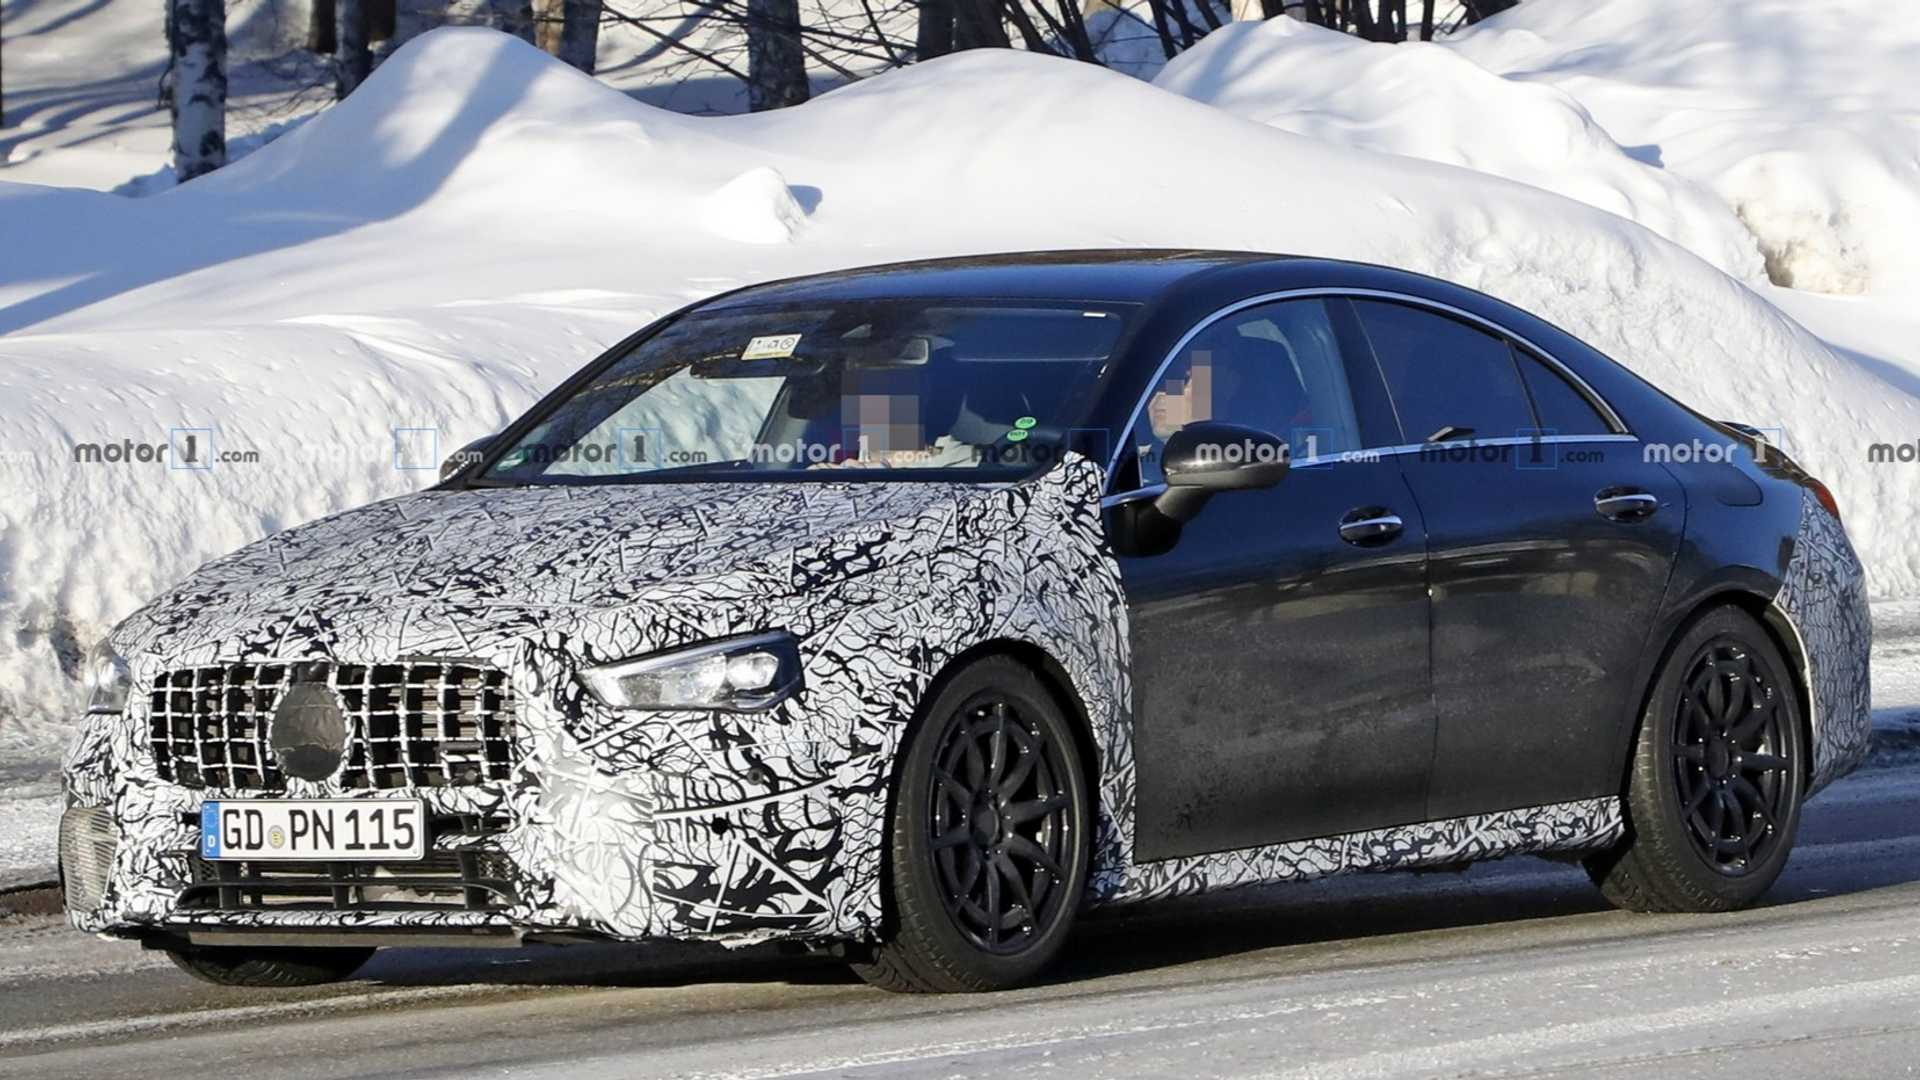 New Mercedes-AMG CLA 45 caught testing with less camo